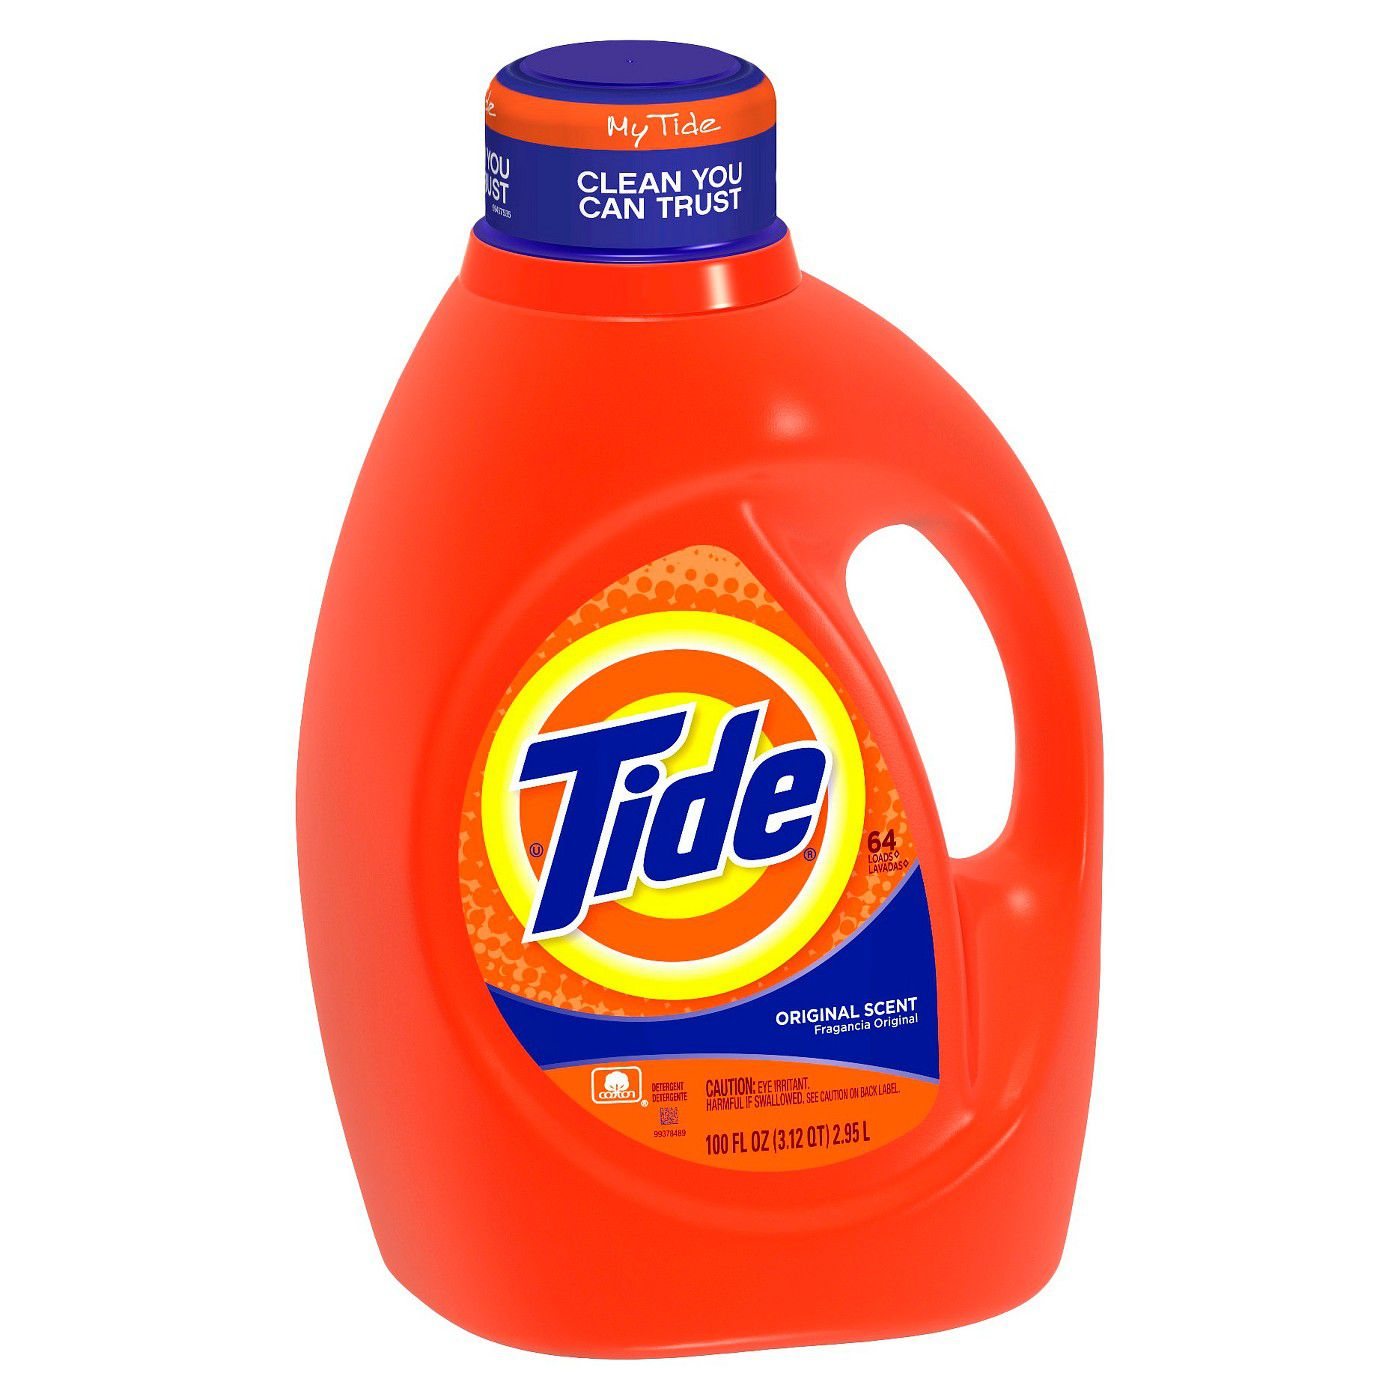 Best Laundry Detergent 2019 The 8 Best Laundry Detergents of 2019